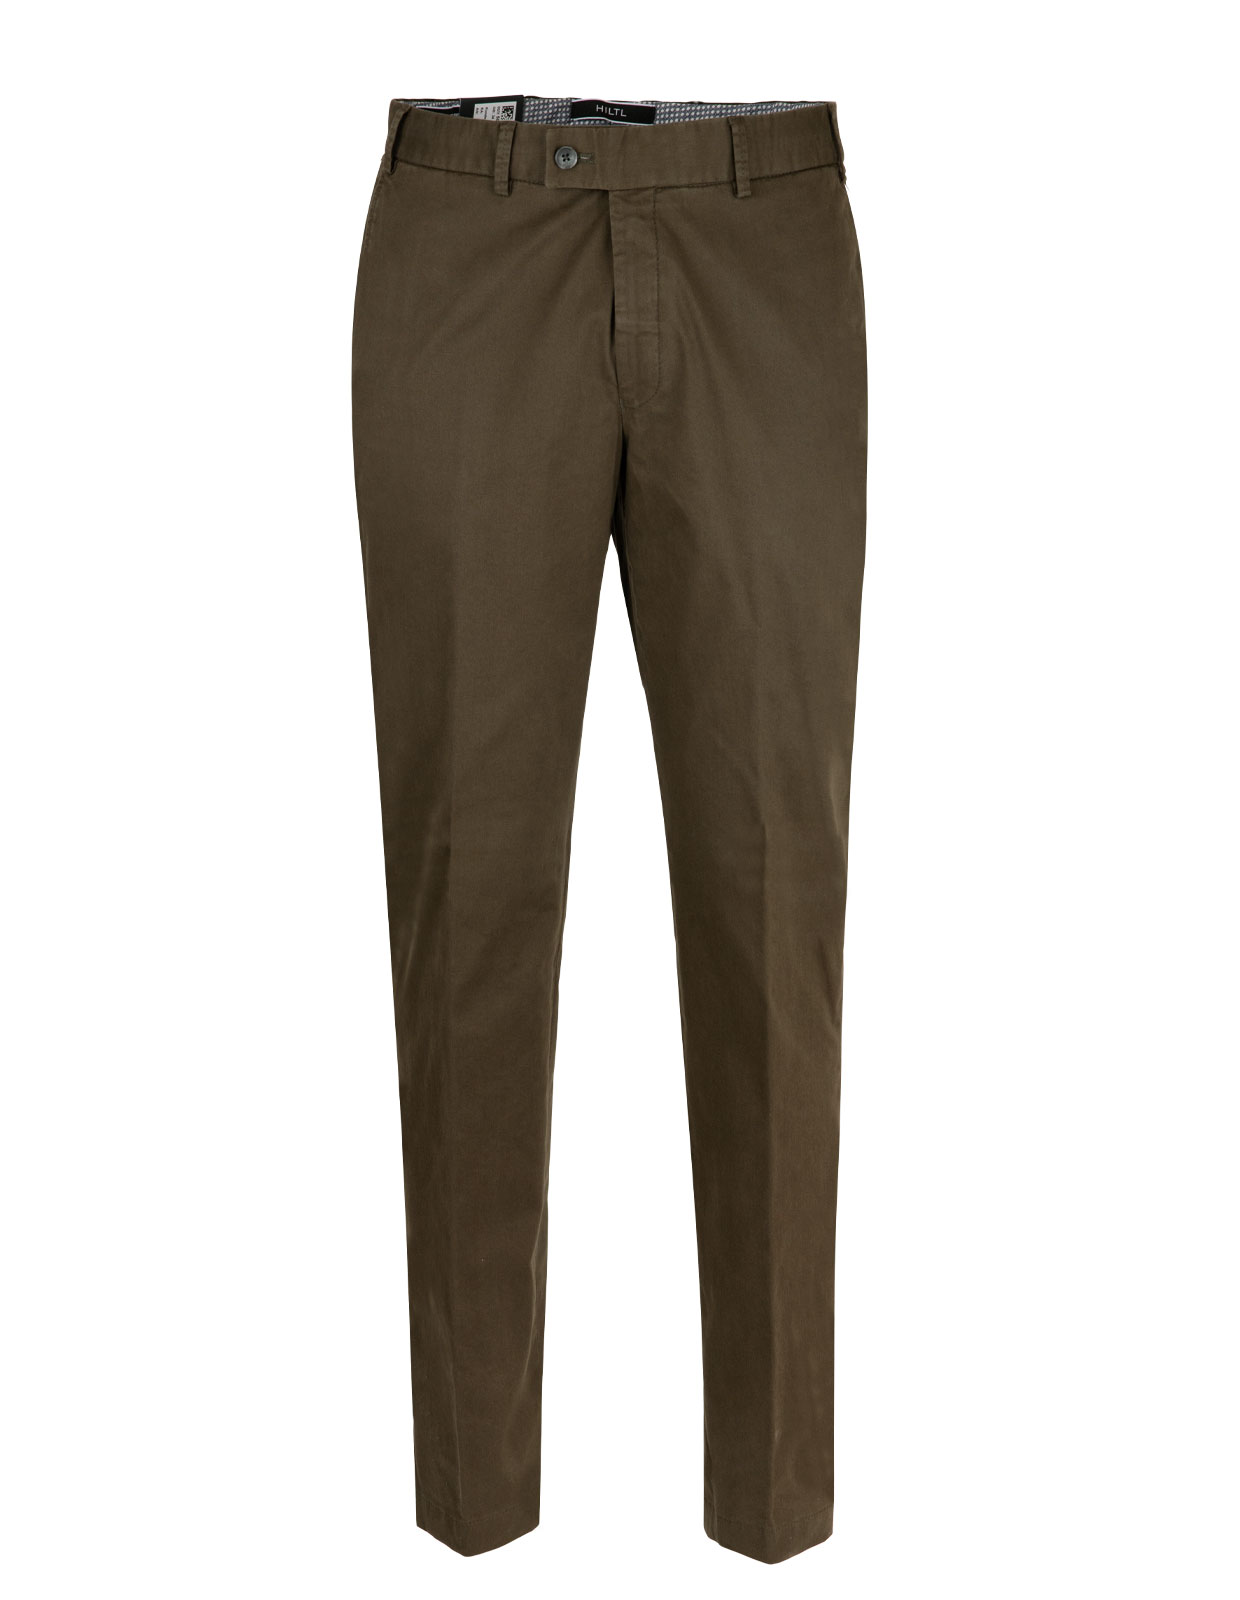 Parma Regular Fit Byxa Cotton Twill Olive